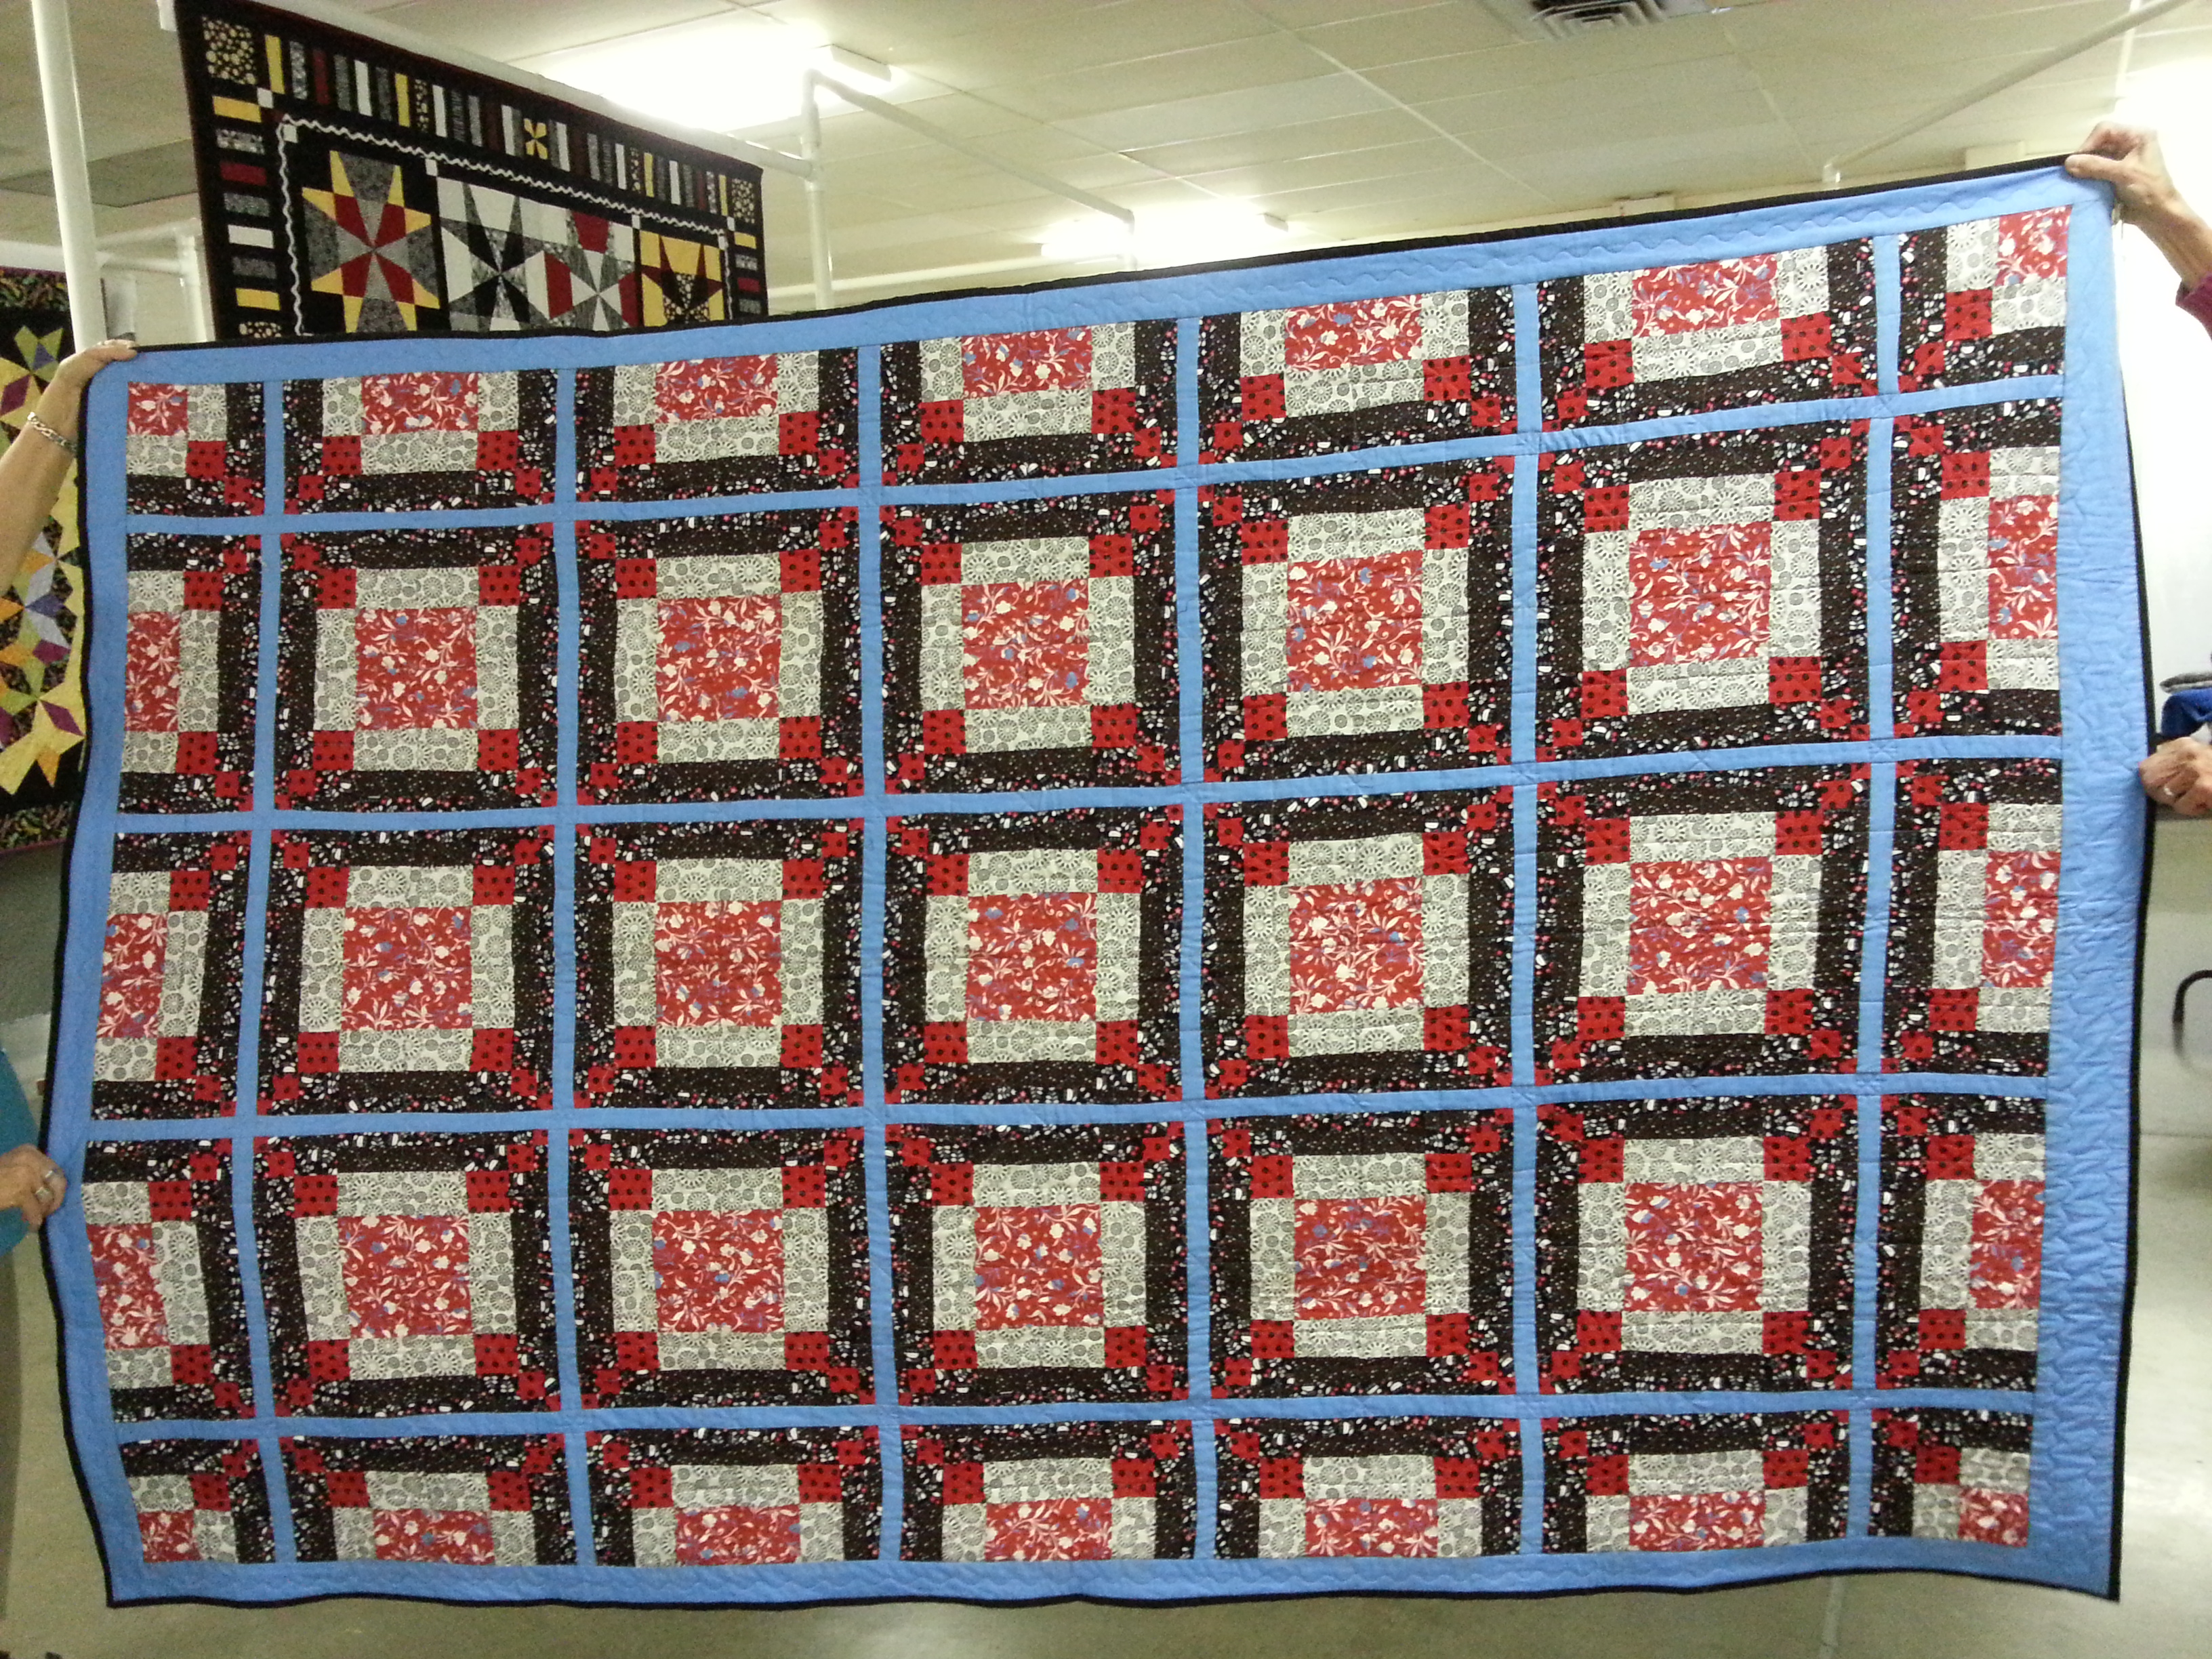 Quilt Patterns With Center Panel - The New Quilting Design